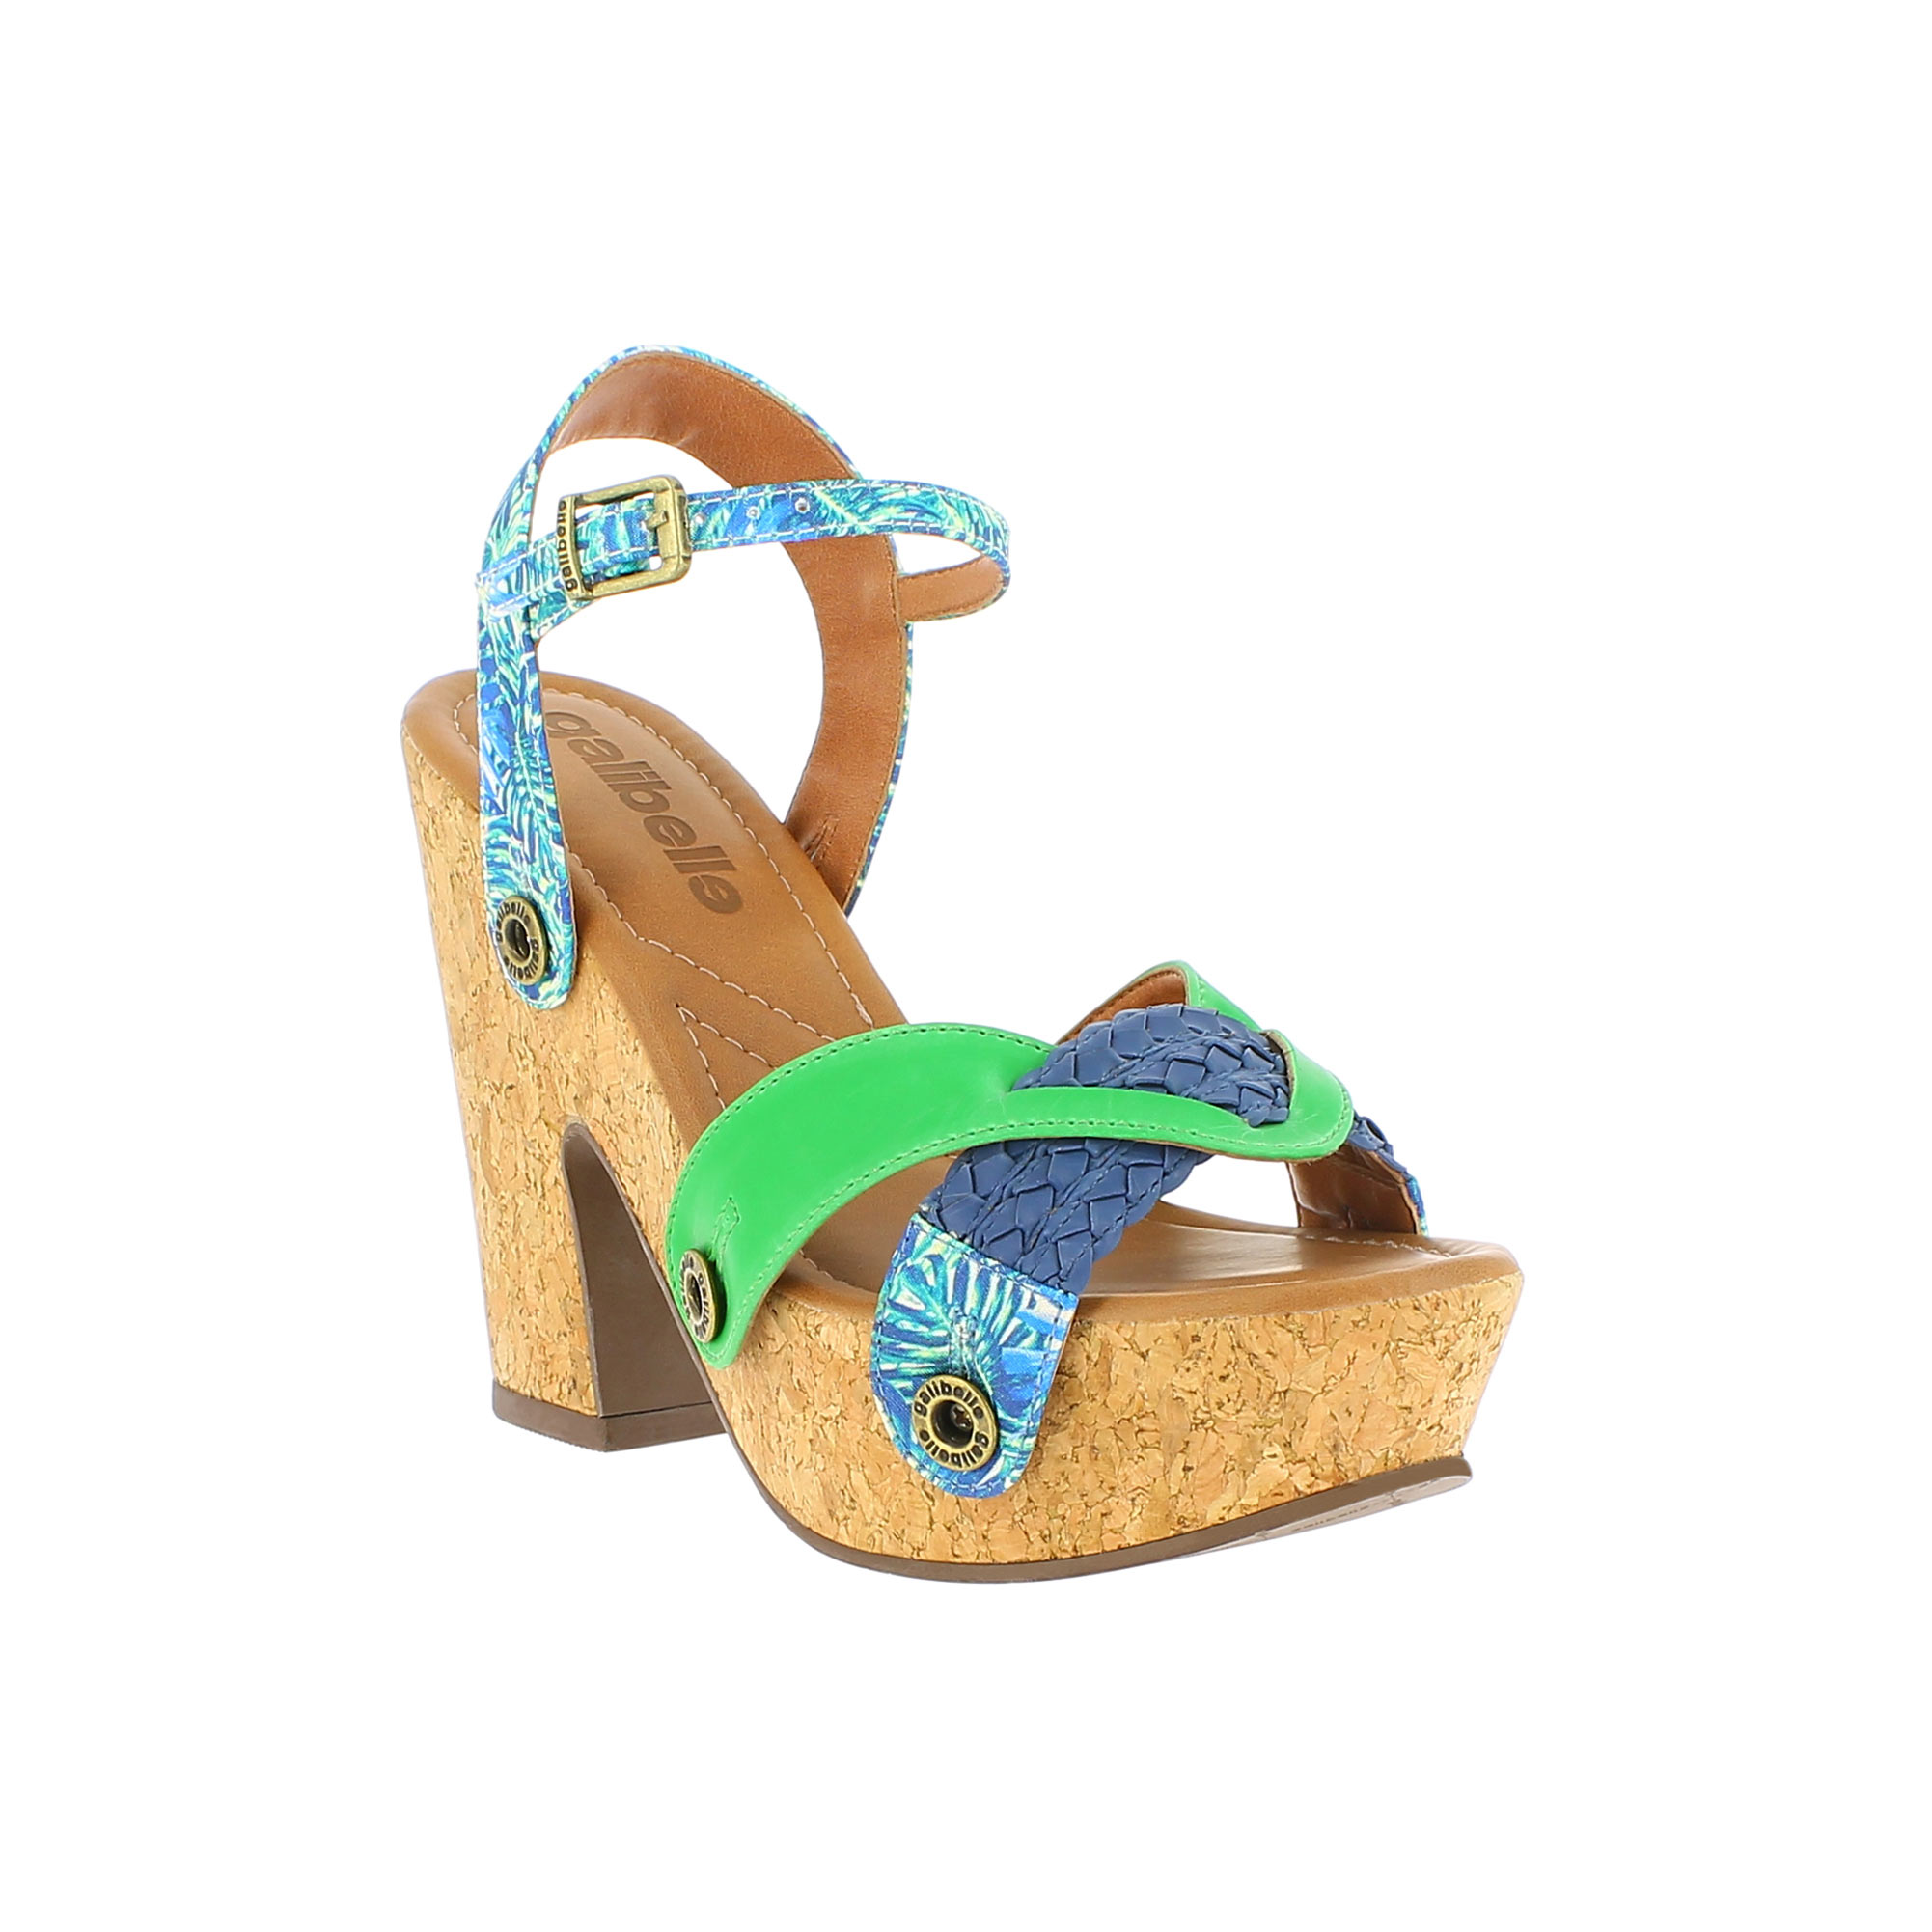 Sara brazilizn sandals from Galibelle interchangeable straps and soles